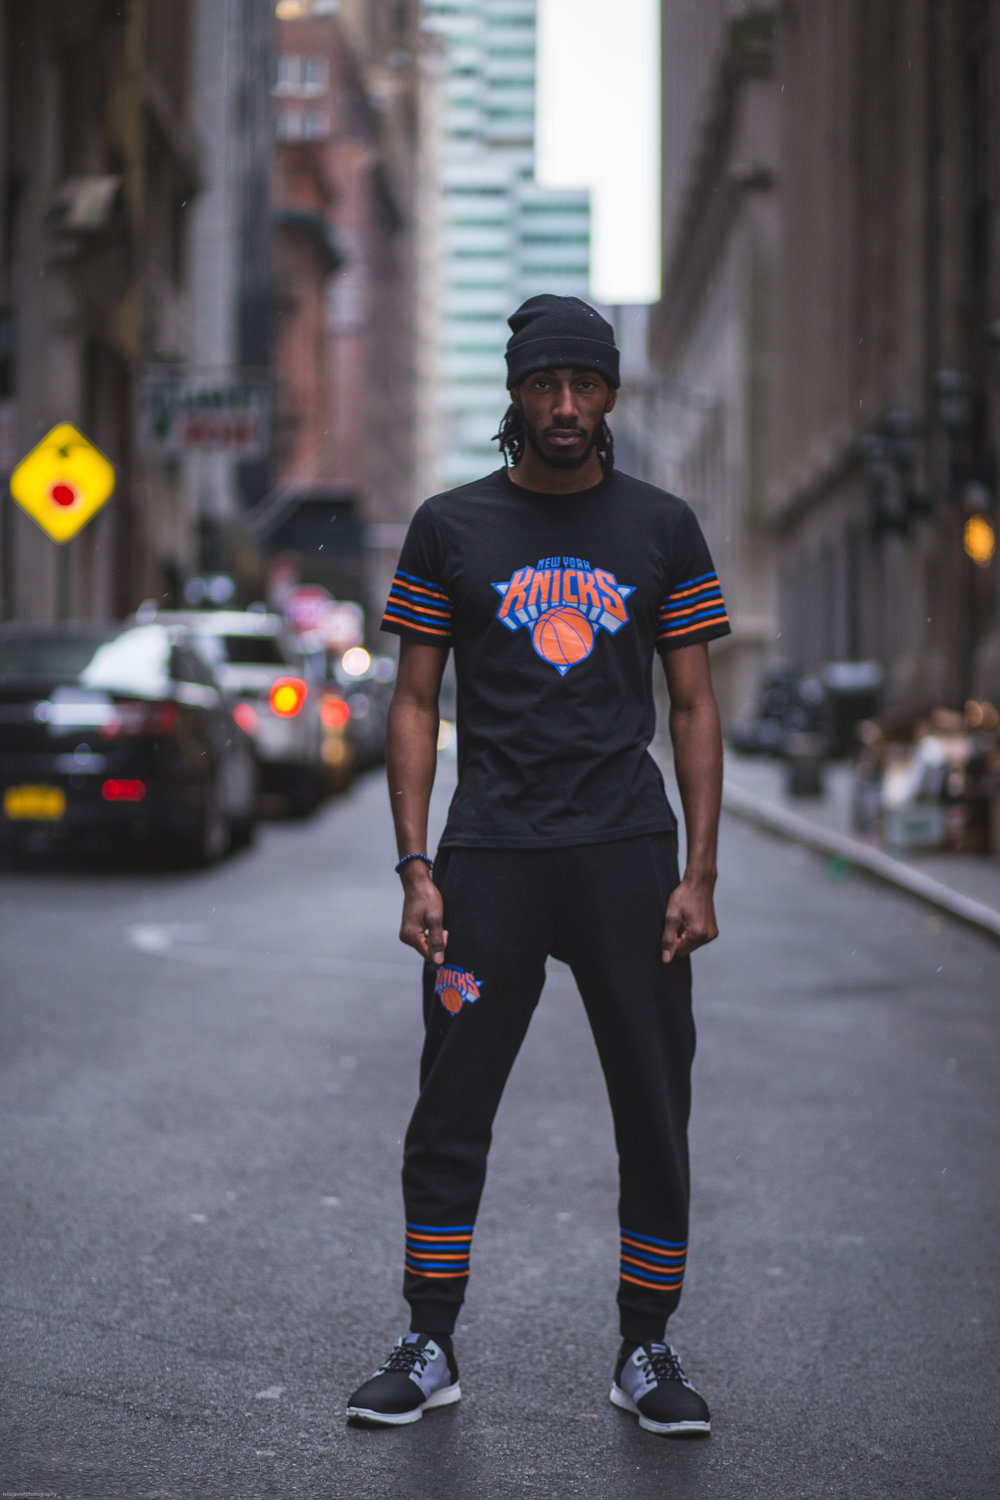 Grungy Gentleman x New York Knicks 3.jpg